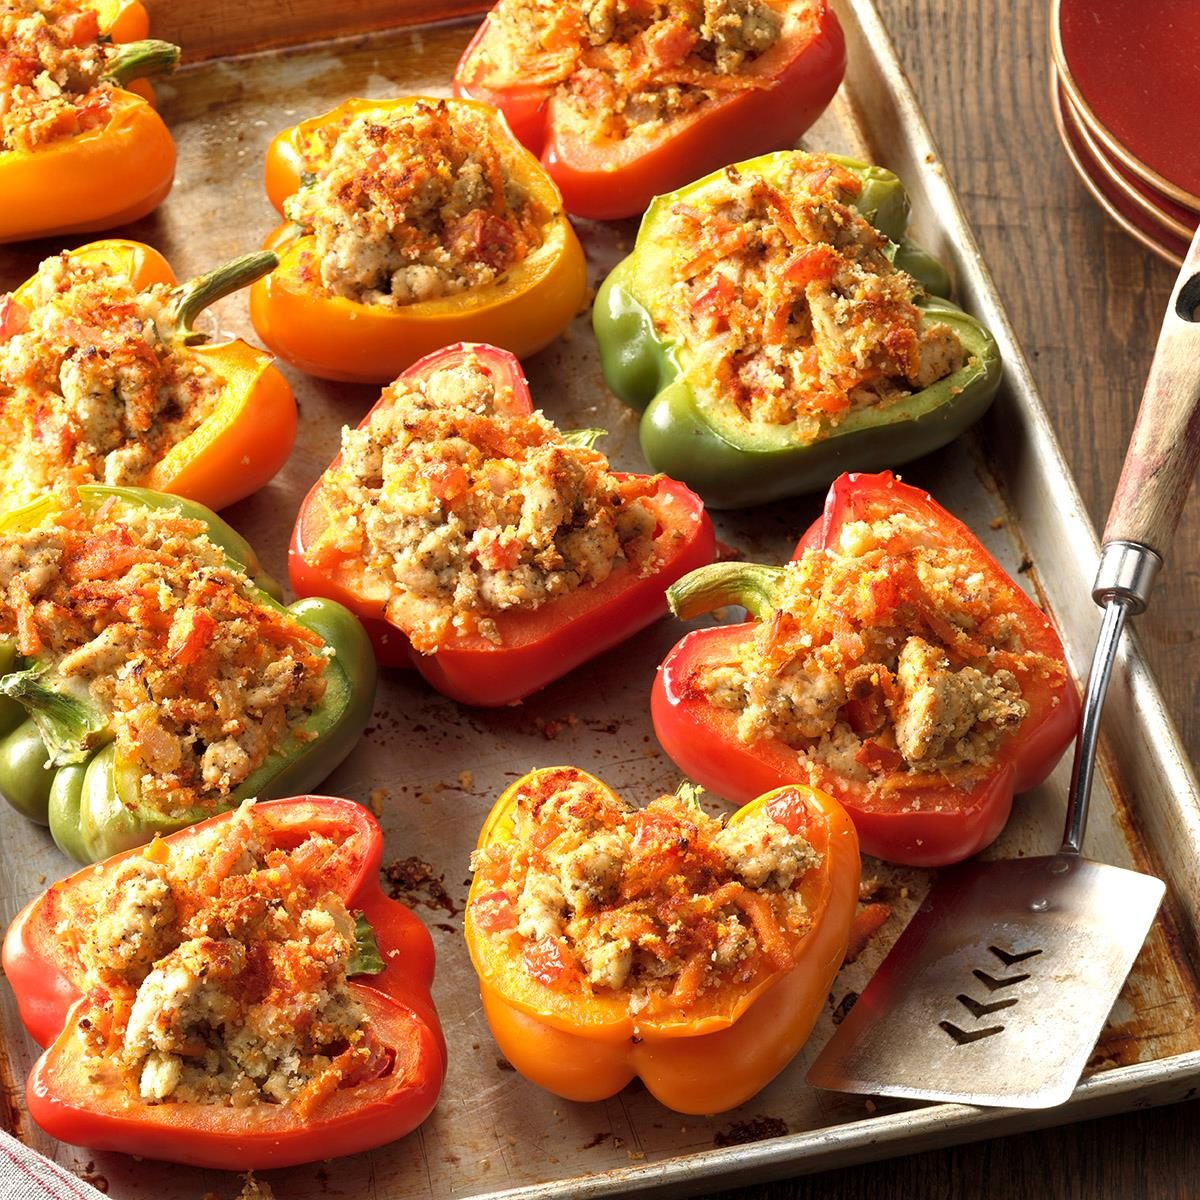 8 Incredibly Delicious Diabetic Dinner Recipes  Taste of Home